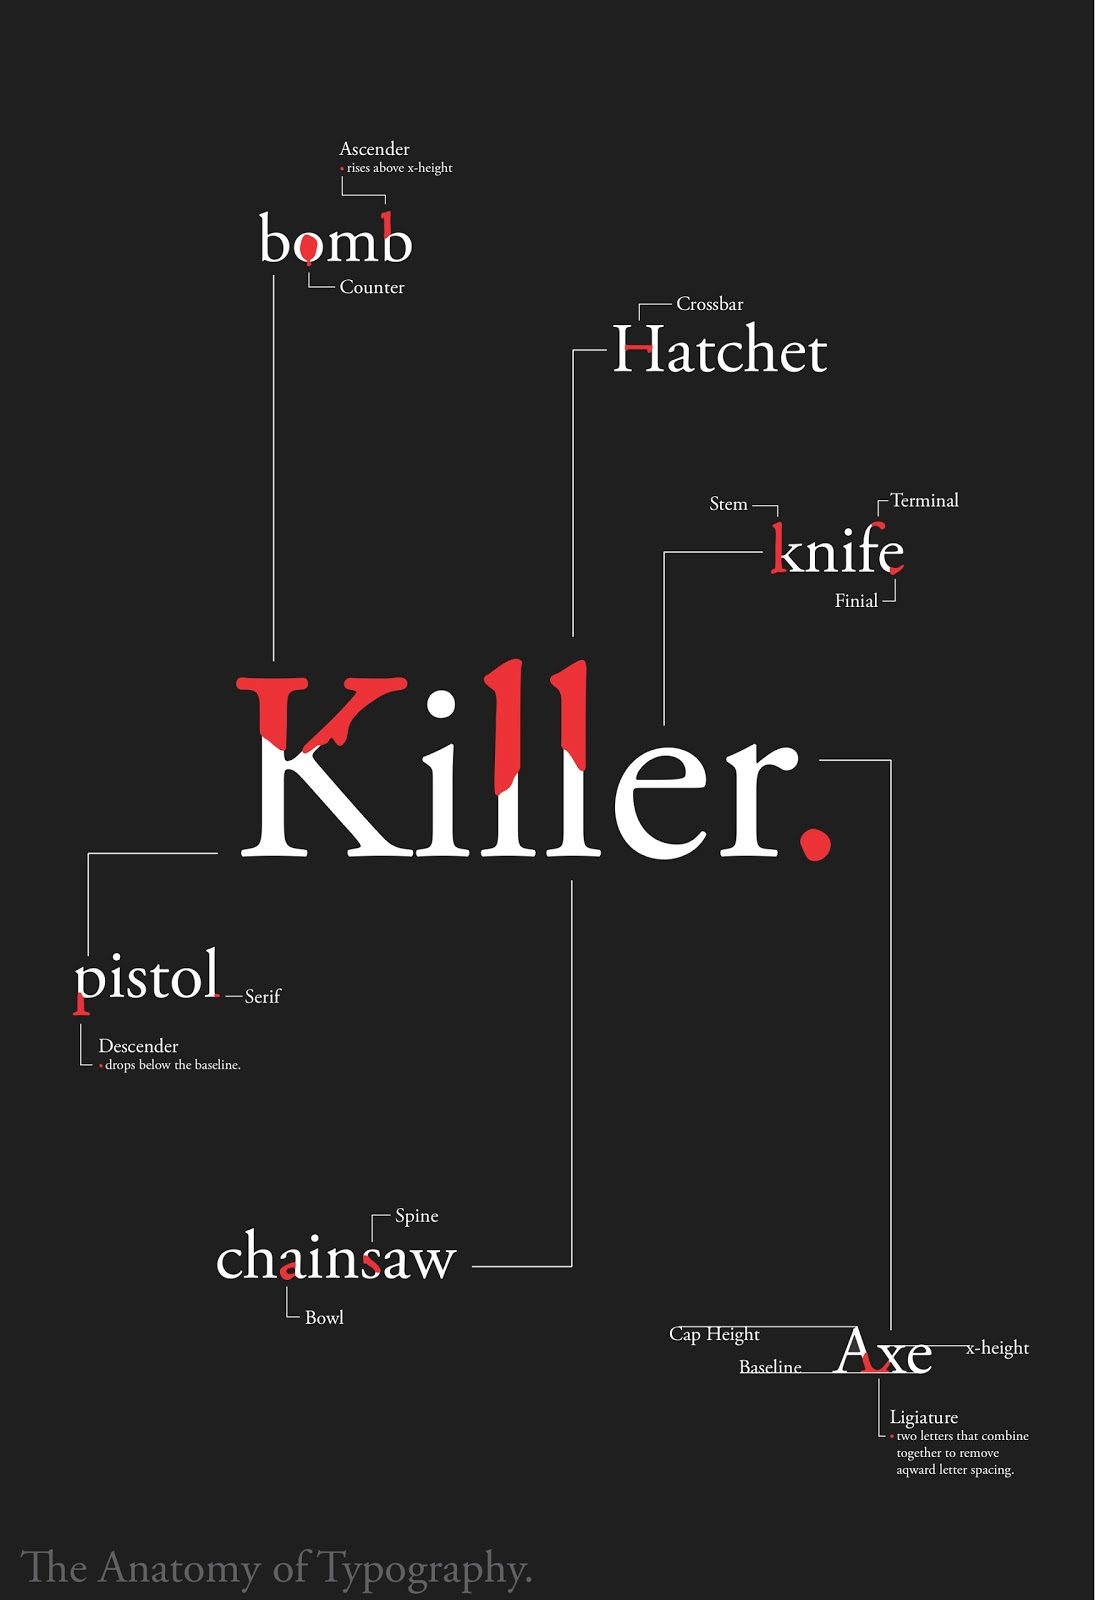 madman anatomy of typography poster